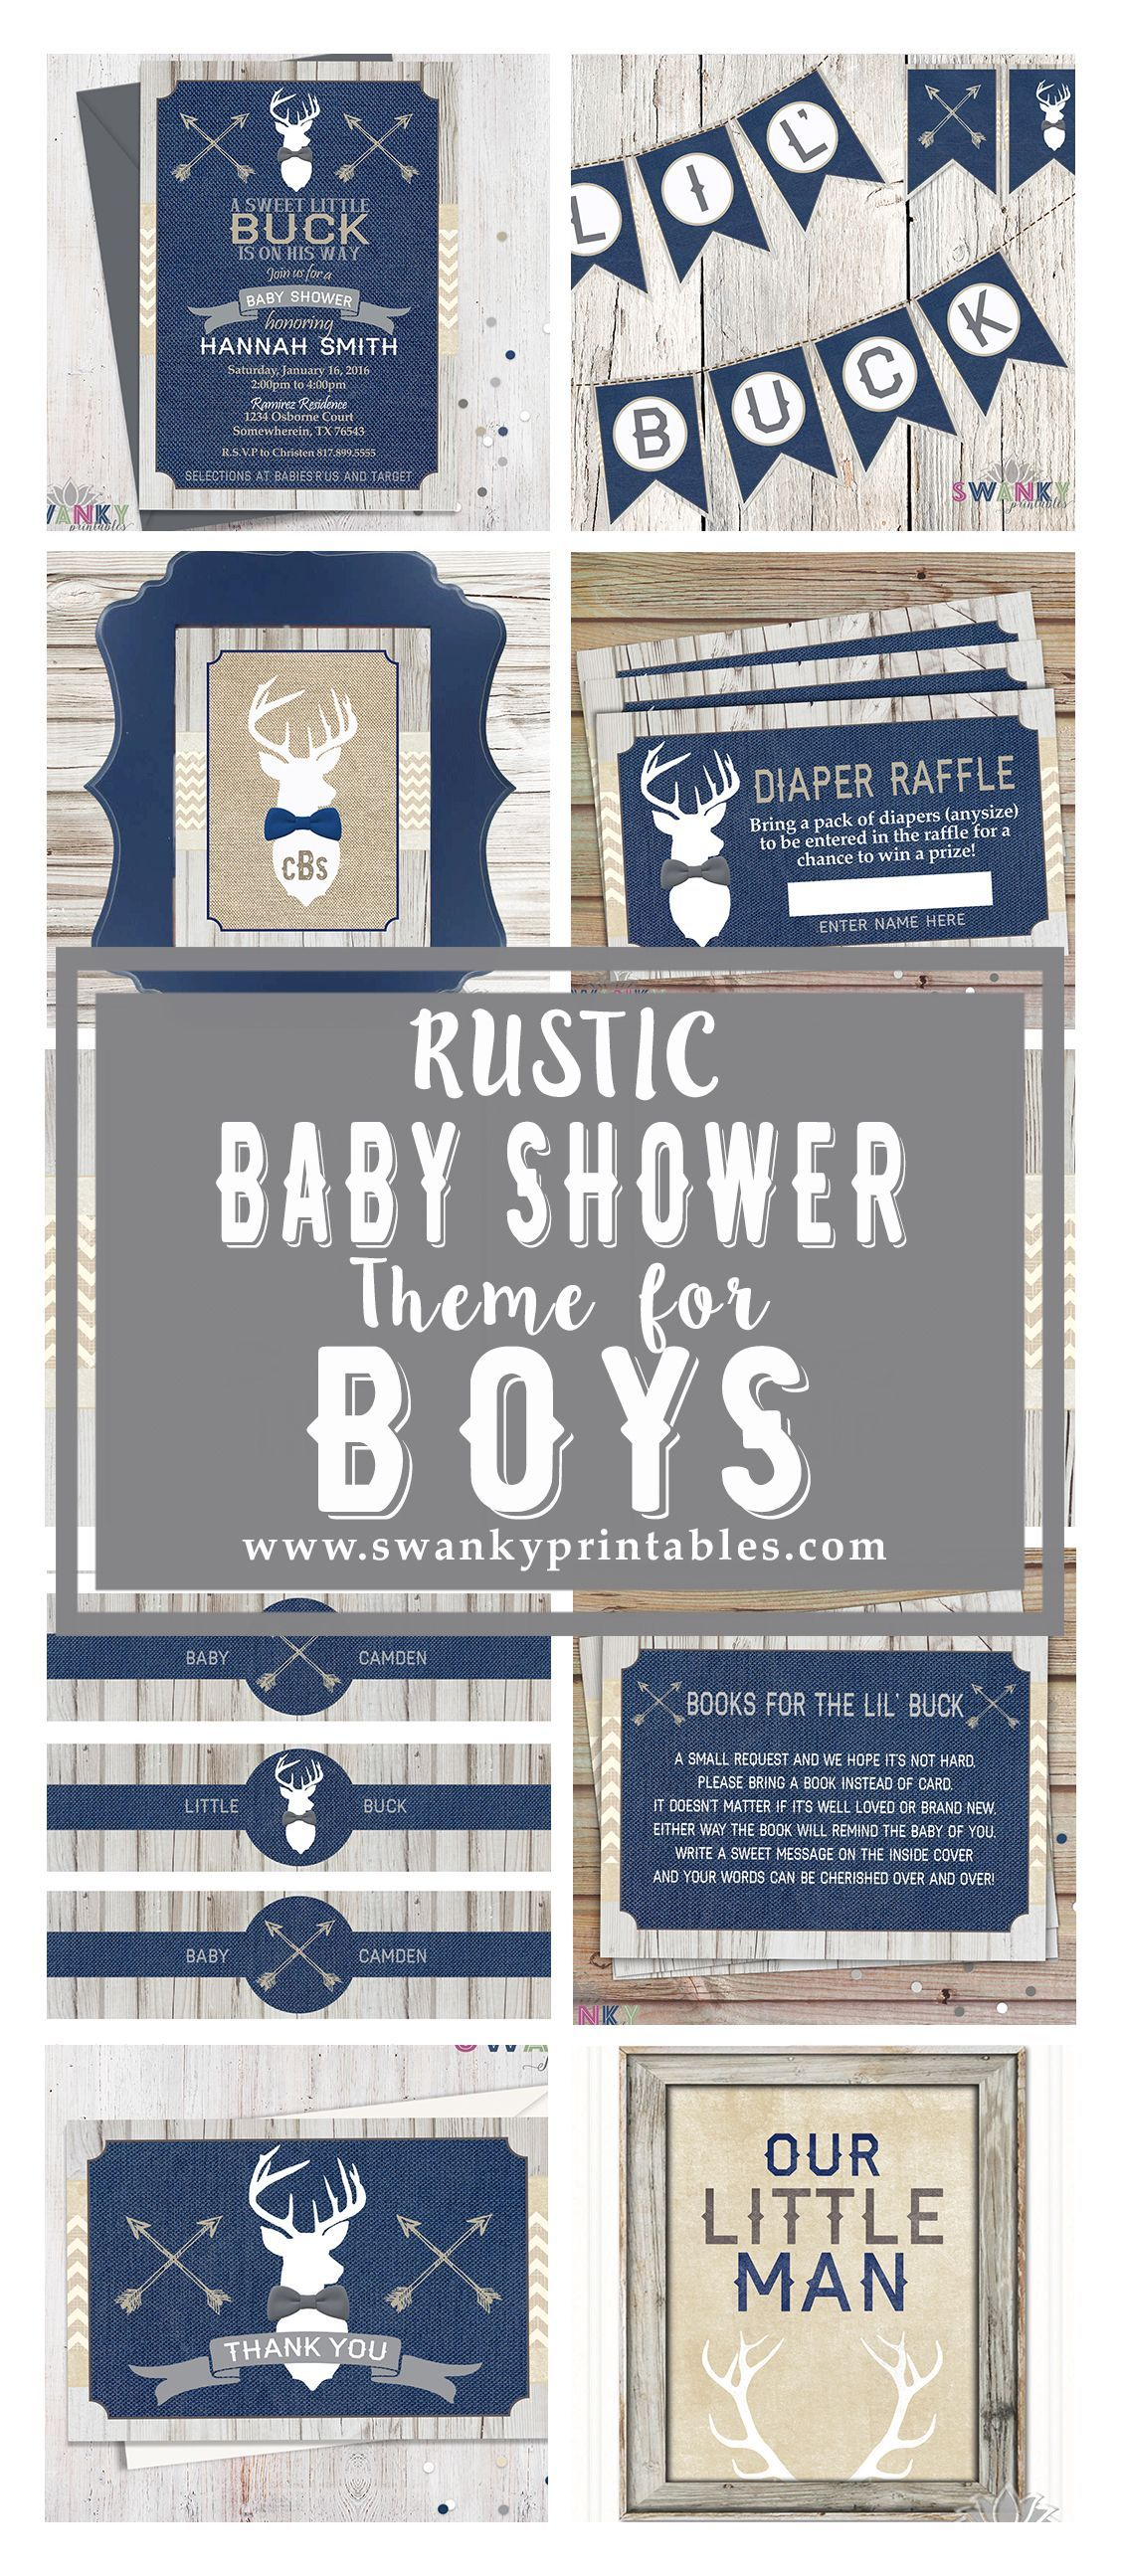 New 7x5ft Oh Deer Boy Baby Shower Photography Background Props Blue Rustic Wood Burlap Baby Shower Little Buck Winter Snowflakes Backdrops Party Decoration Photo Booth Banner Supplies